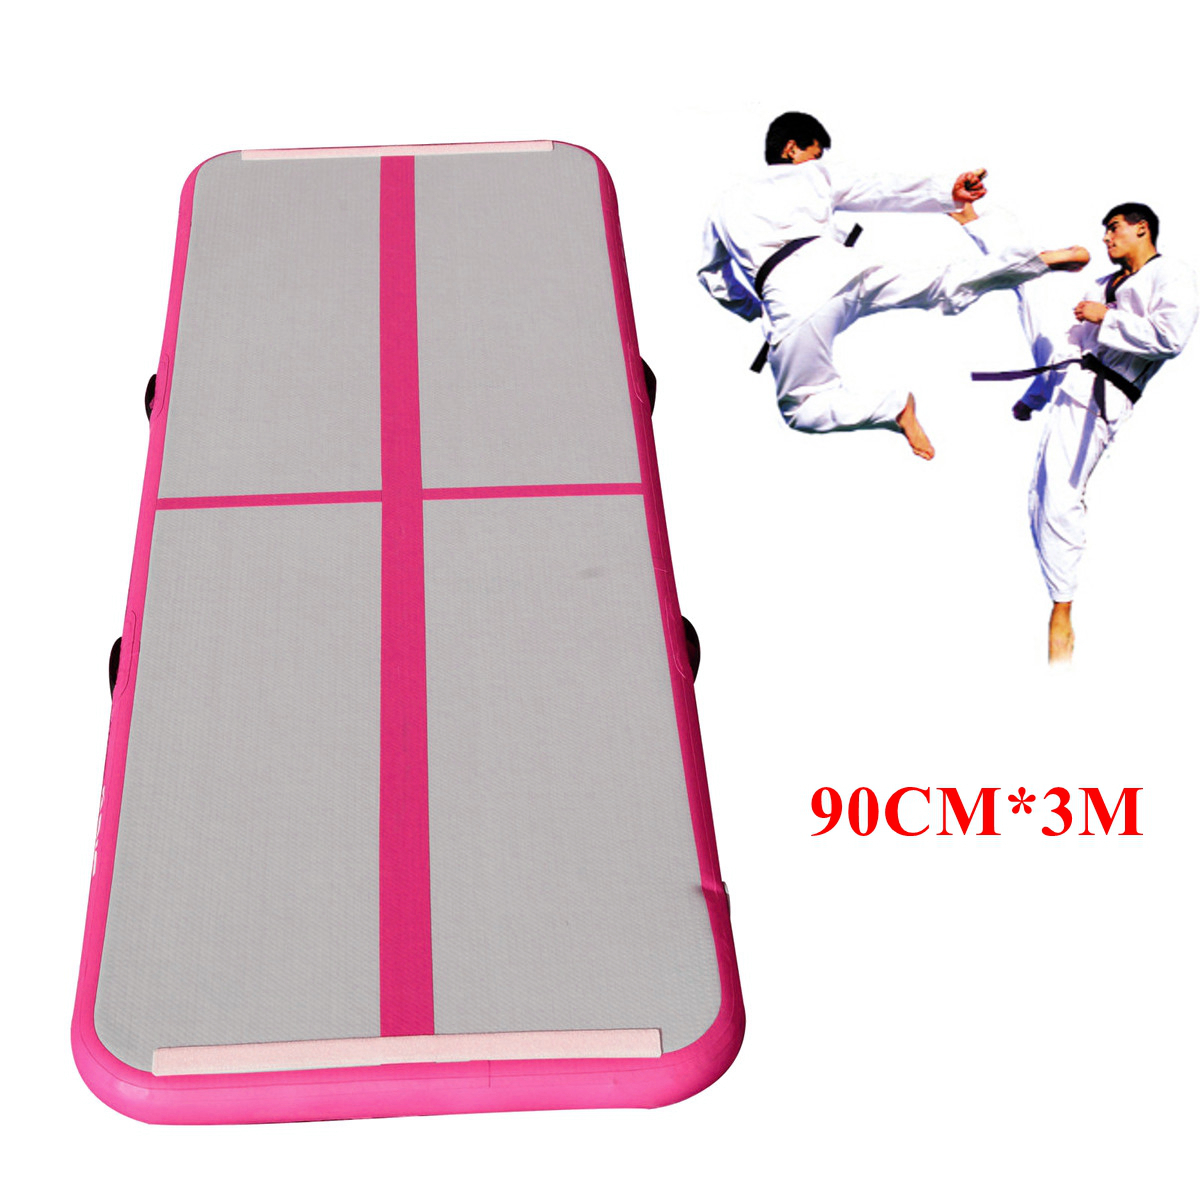 Ipree 174 Gym Air Track Floor Pad Home Gymnastics Tumbling